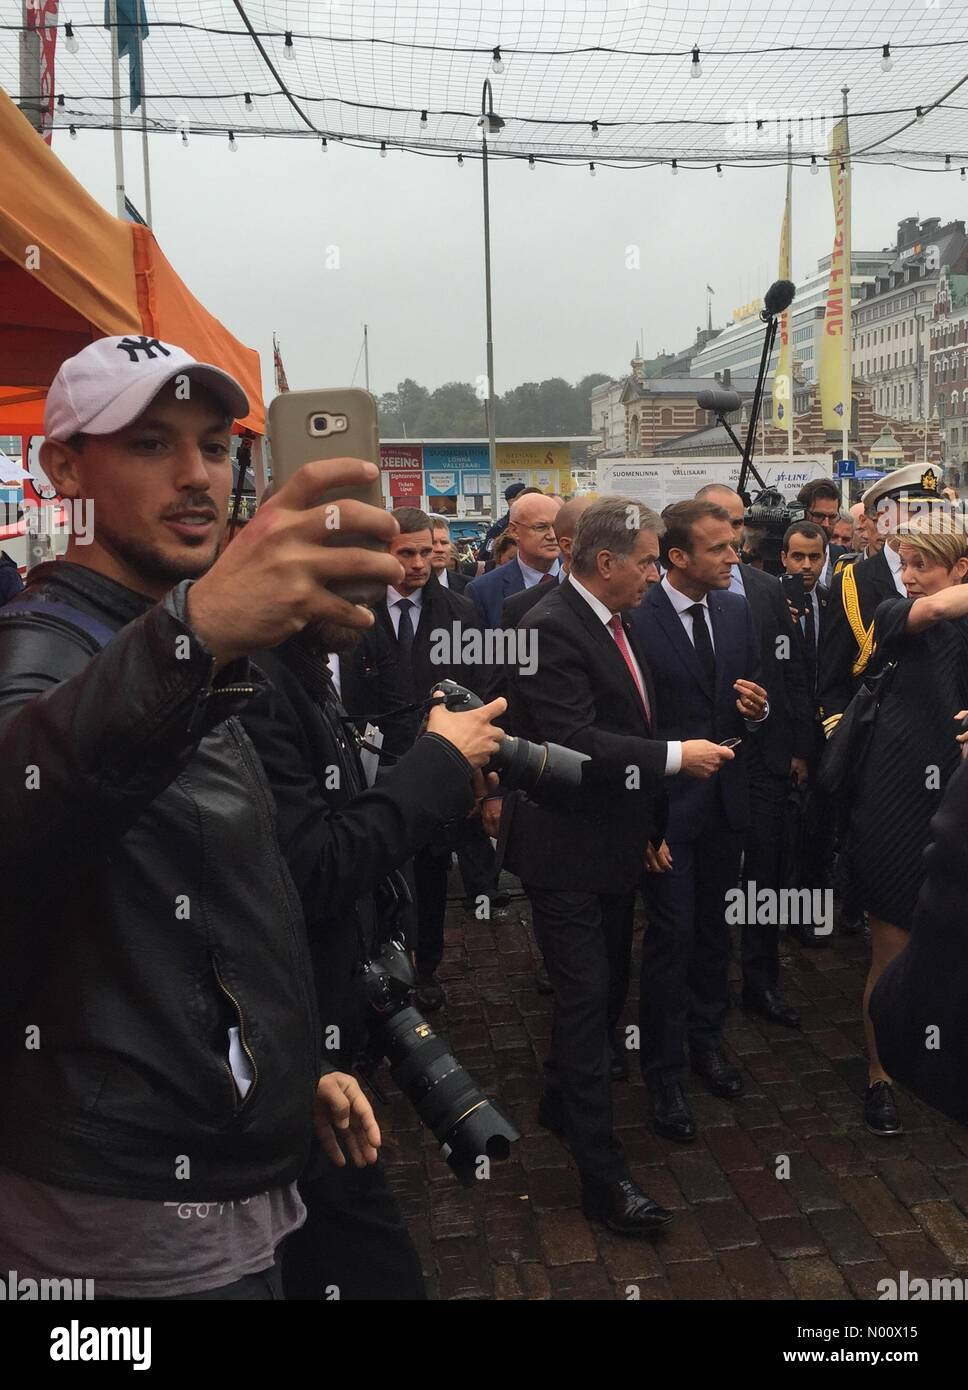 Helsinki, Finland. 30th Aug, 2018. Kauppatori, Helsinki, Finland. 30th August 2018. French President Emmanuel Macron and Finnish President Sauli Niinistö had a walk at market place after discussing military partnership issues. Credit: Heini Kettunen/StockimoNews/Alamy Live News - Stock Image